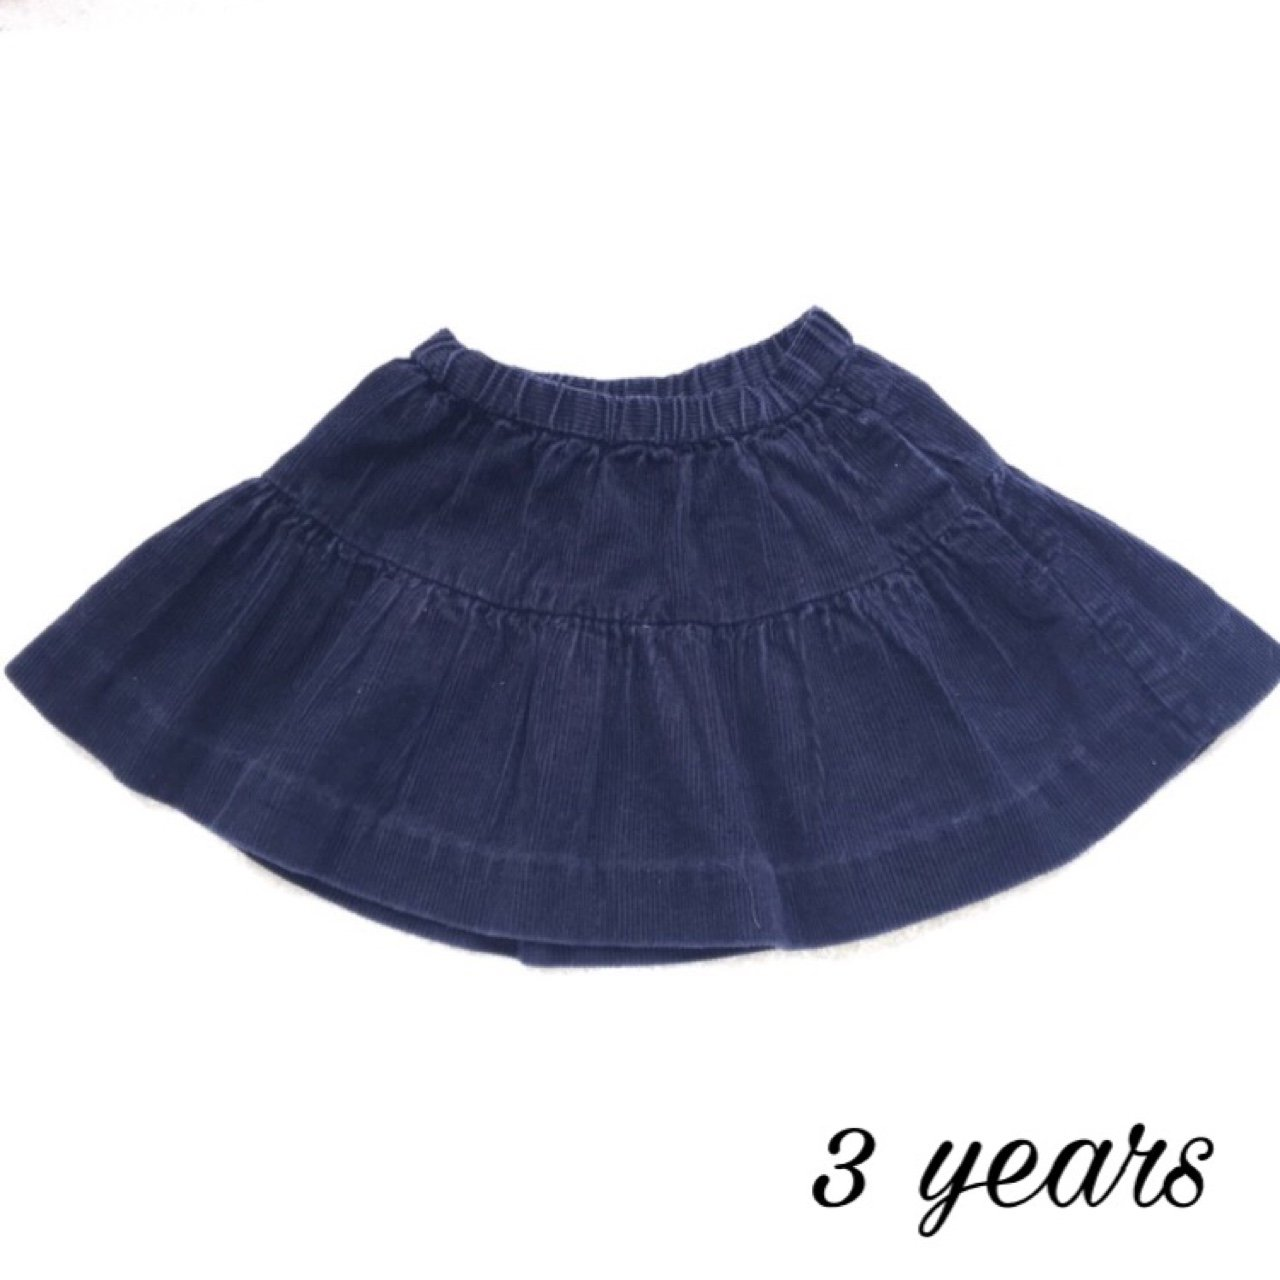 2c5f97da5 @jackandme. 2 years ago. Chorley, United Kingdom. Baby girl Ralph Lauren  navy blue cord skirt ...